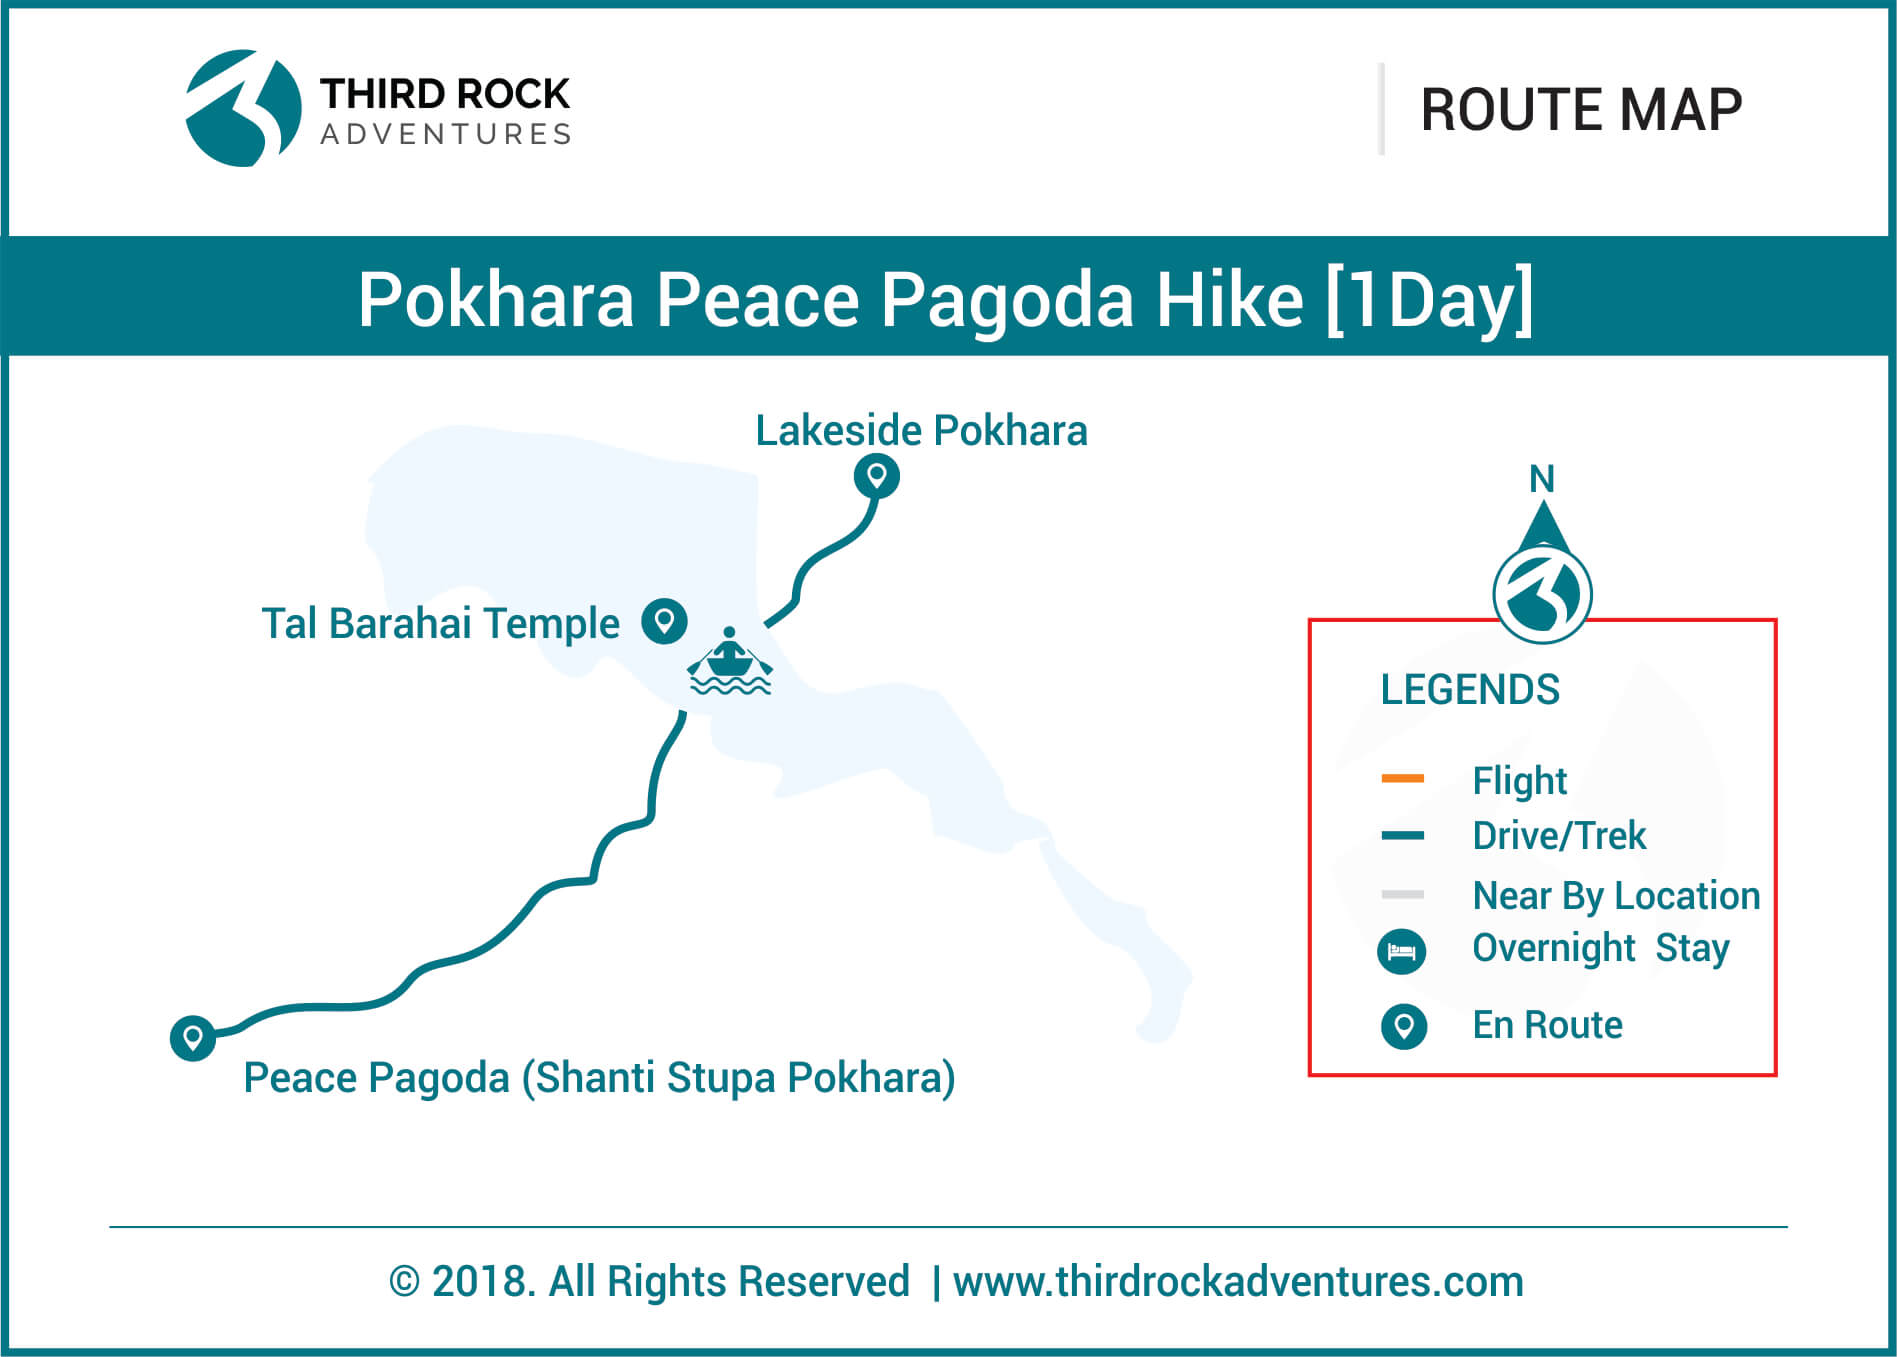 Pokhara Peace Pagoda Hike 1 day Route Map